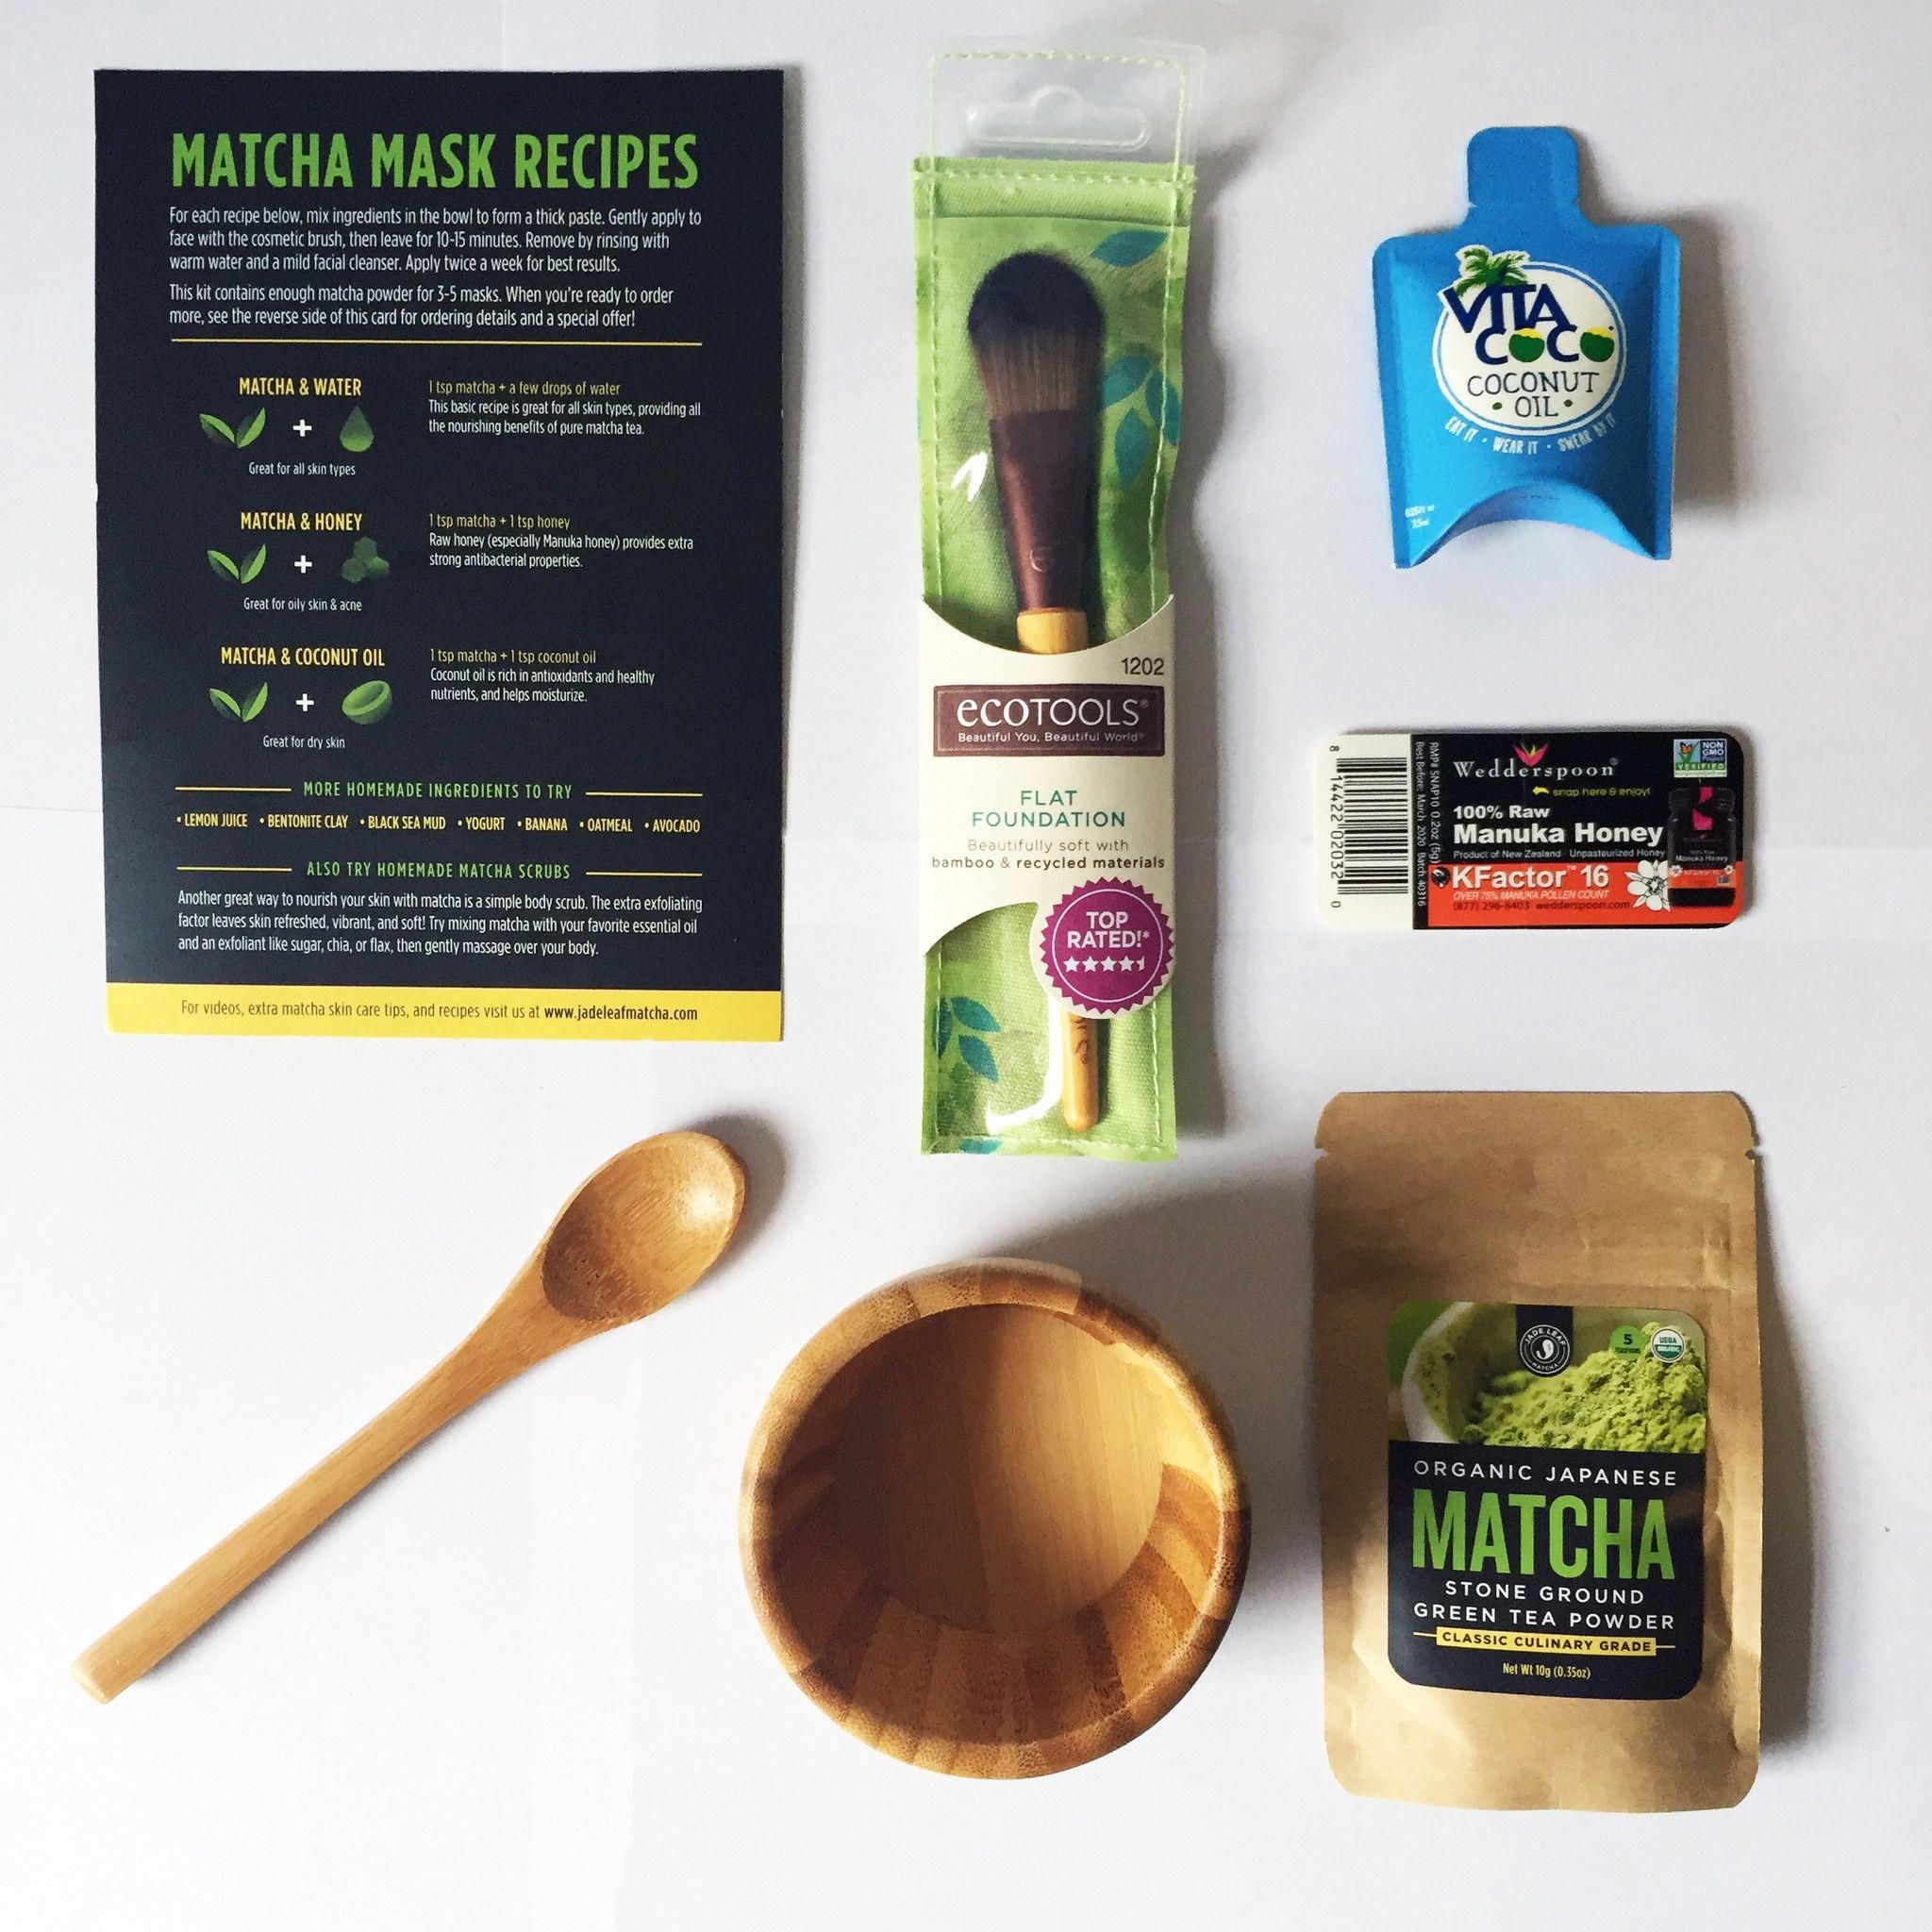 Photo of Matcha Green Tea Face Mask DIY Starter Kit #HowToMakeGreenTeaMask